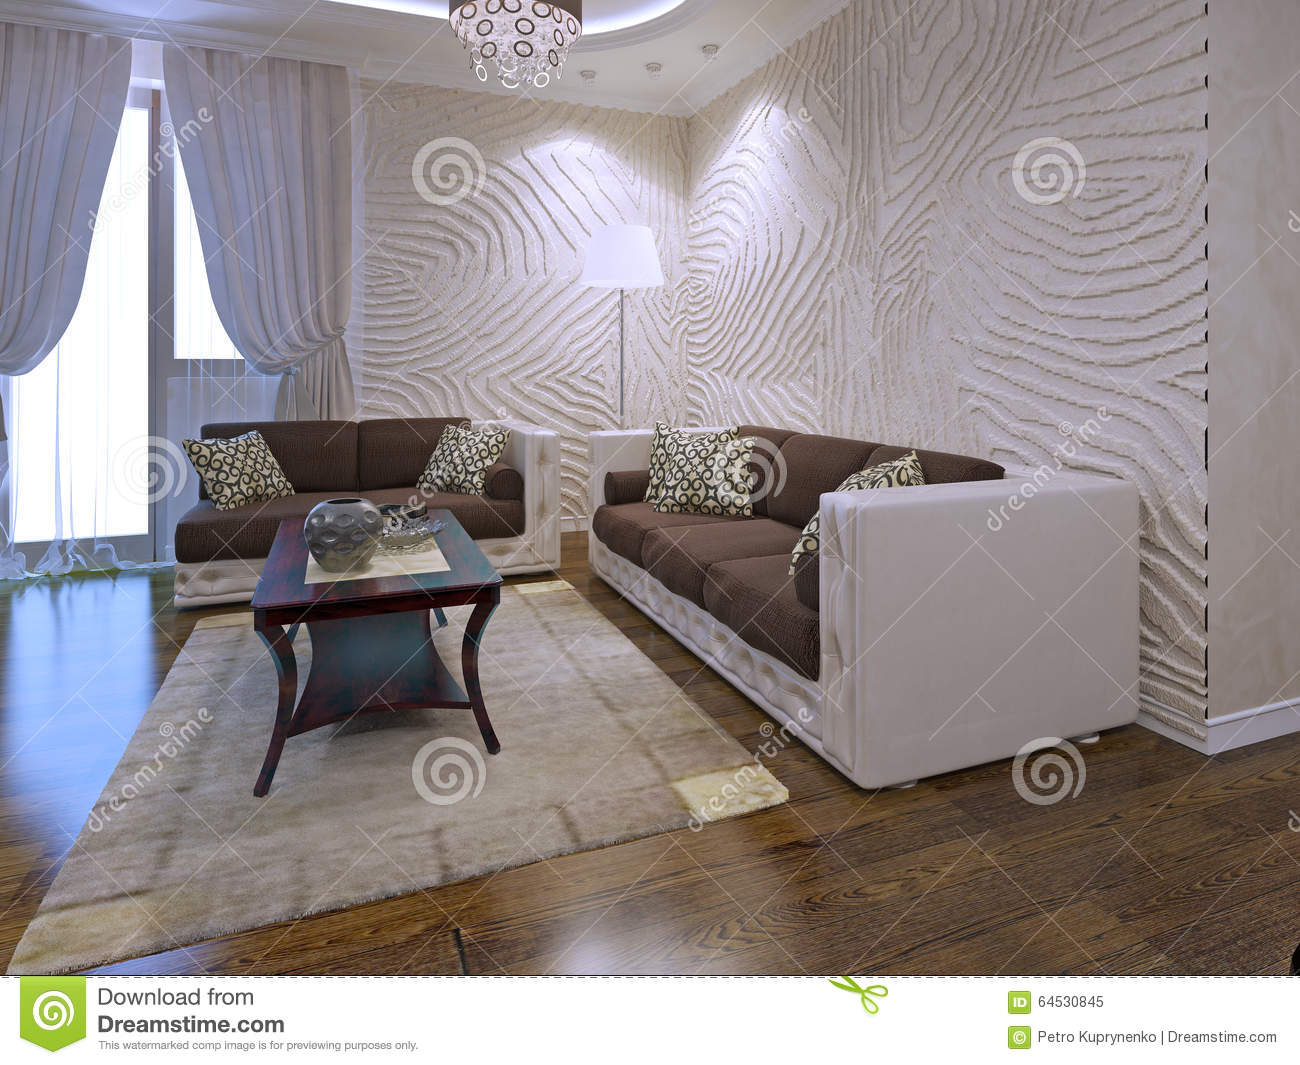 Interior of art deco lounge with wavy walls stock image image of